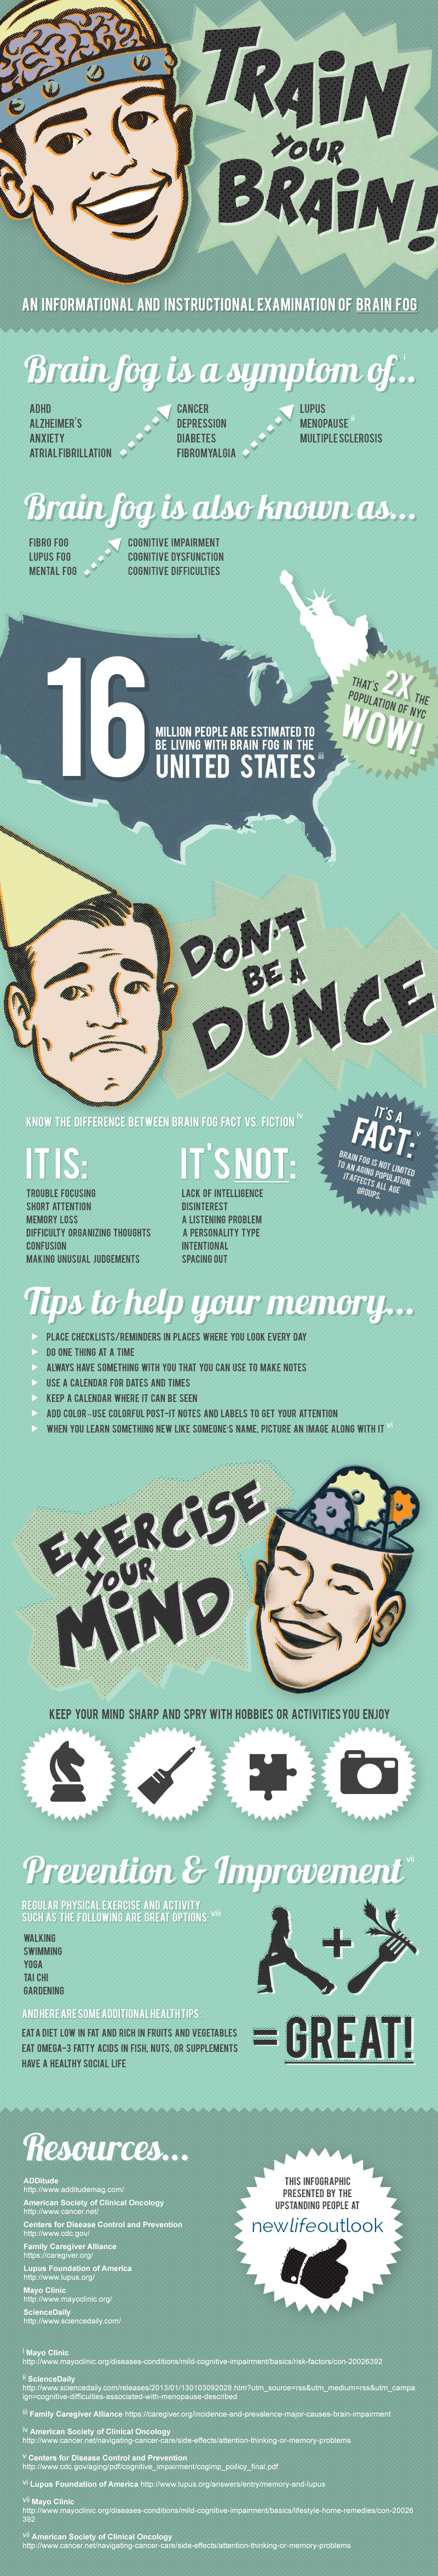 Train Your Brain - Brain Fog: New Life Outlook Lupus Infographic